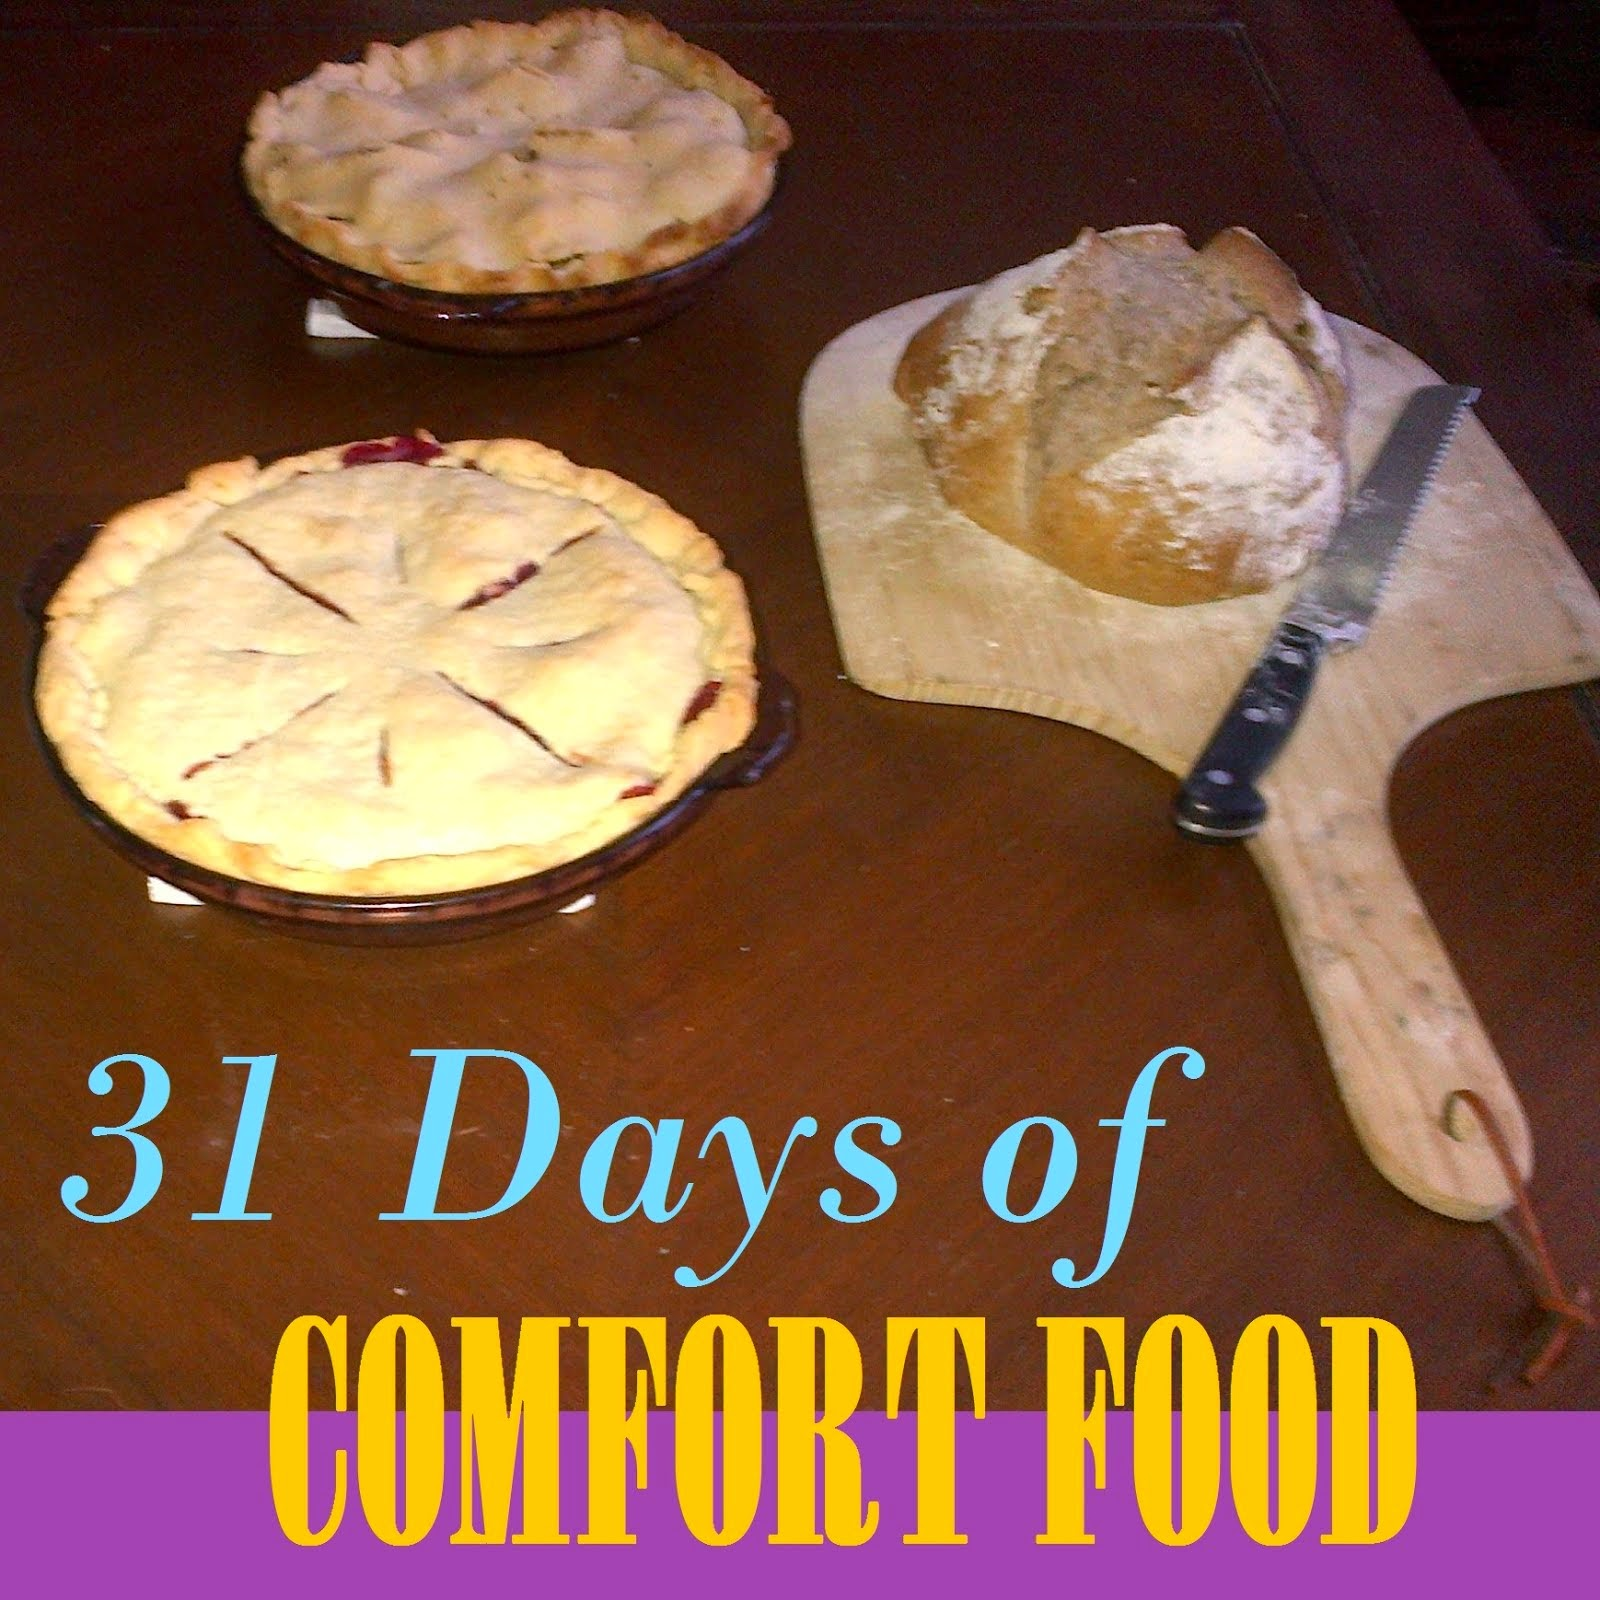 Read all 31 days of comfort food here!